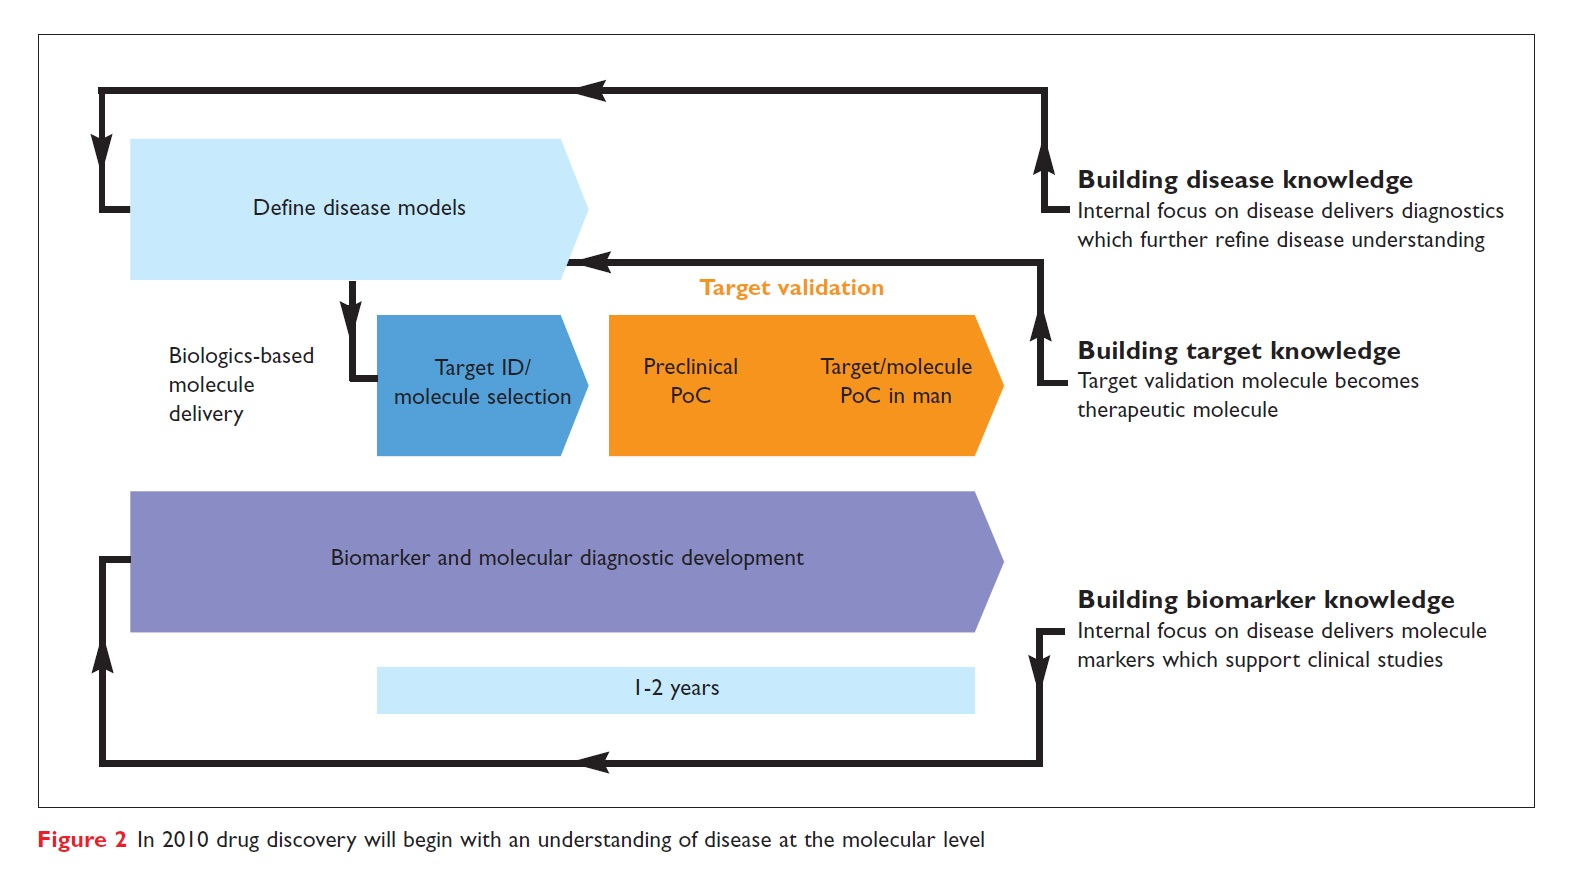 Figure 2 In 2010 drug discovery will begin with an understanding of disease at the molecular level